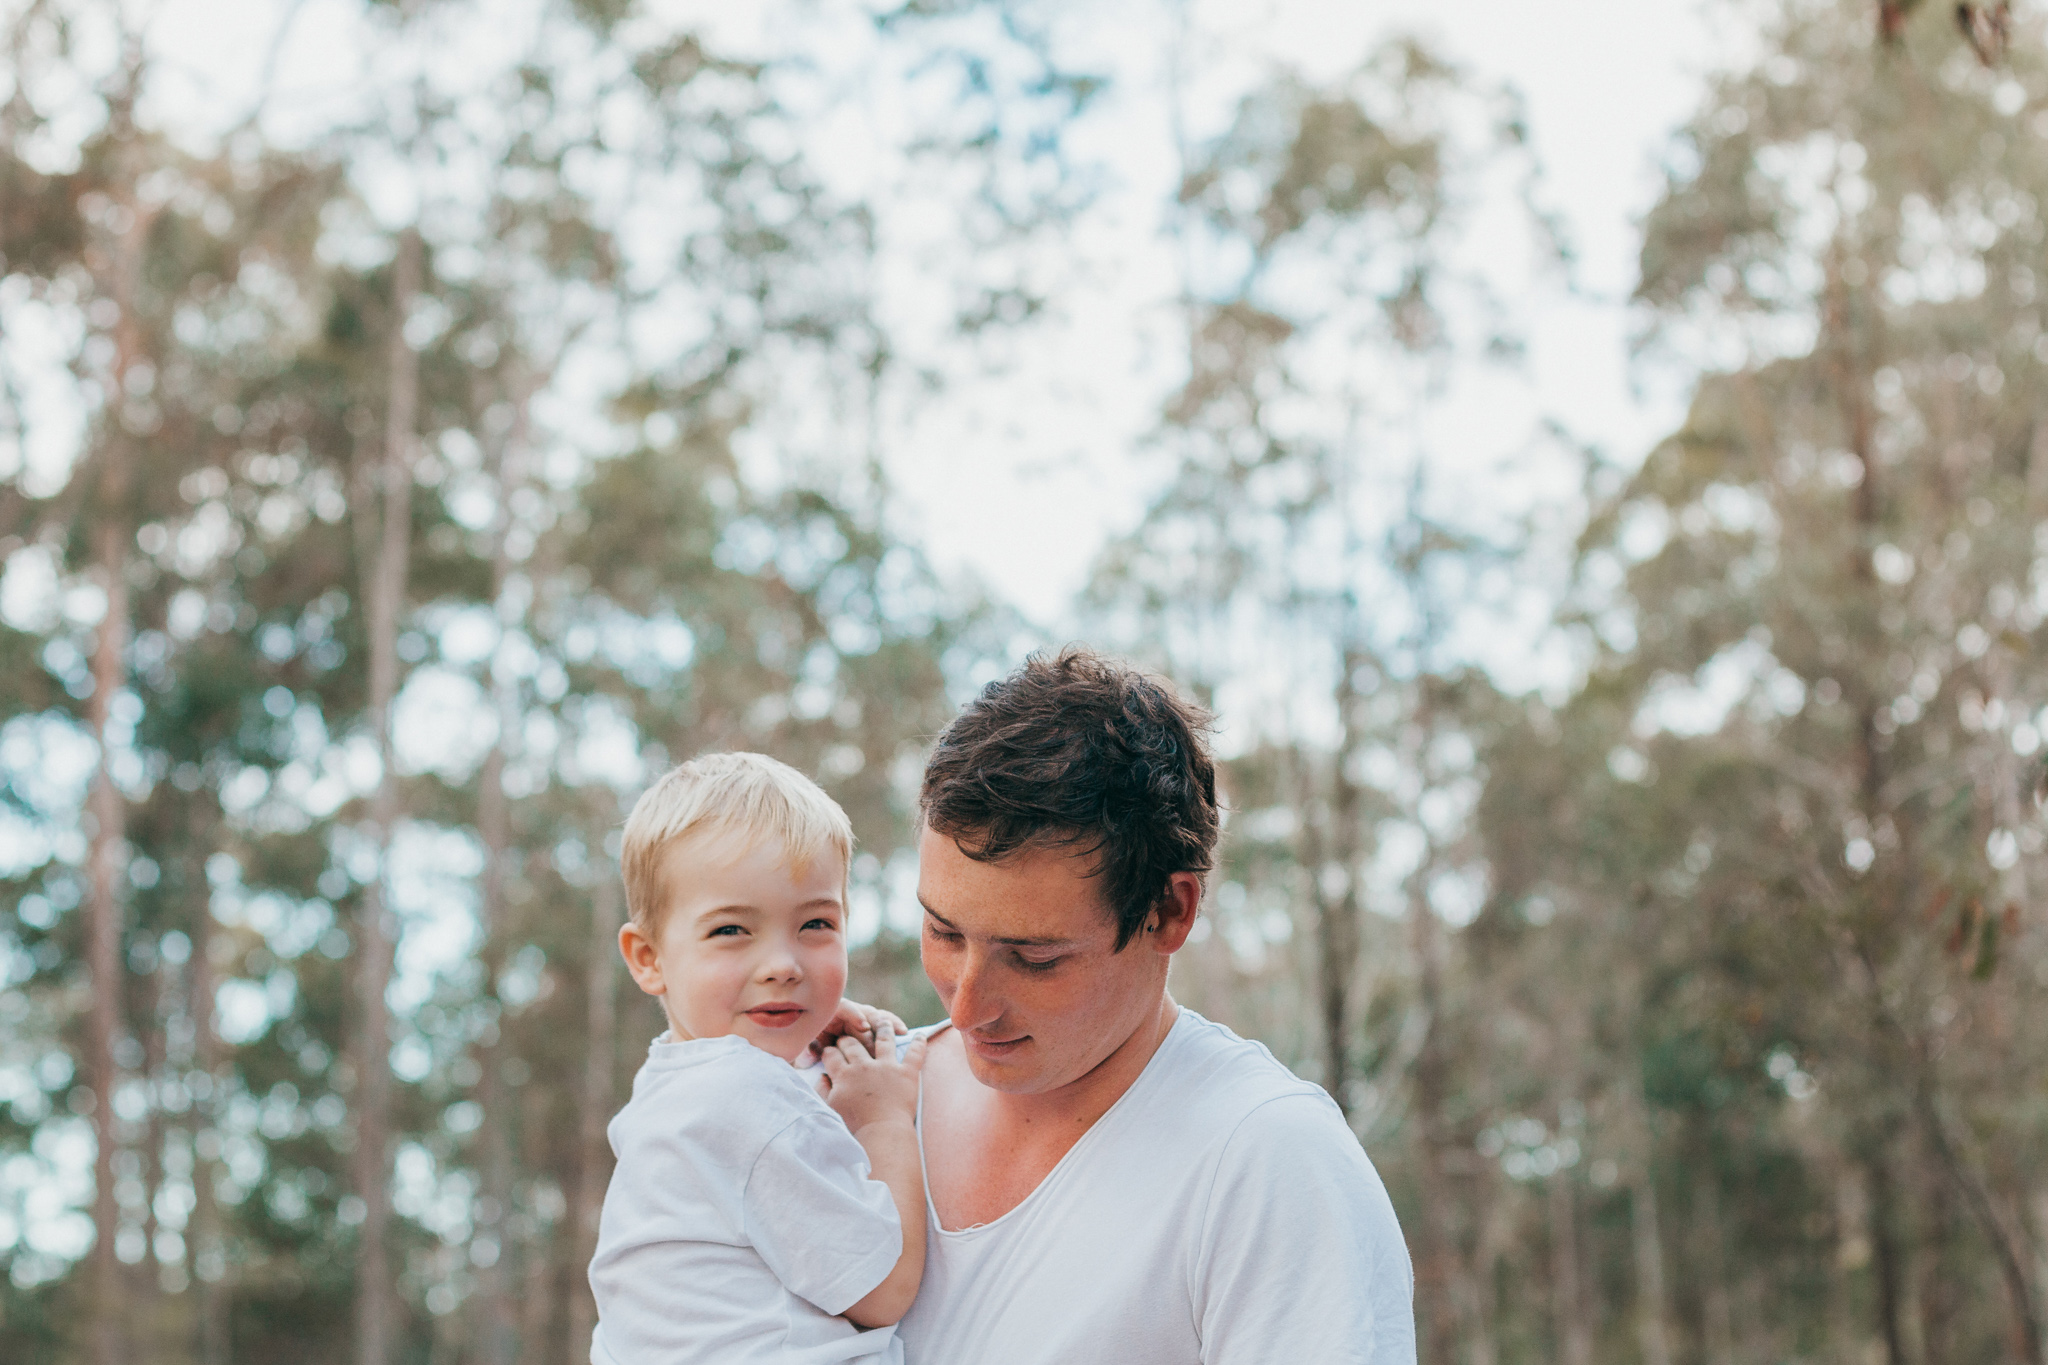 father-holding-son-outdoors-for-portrait